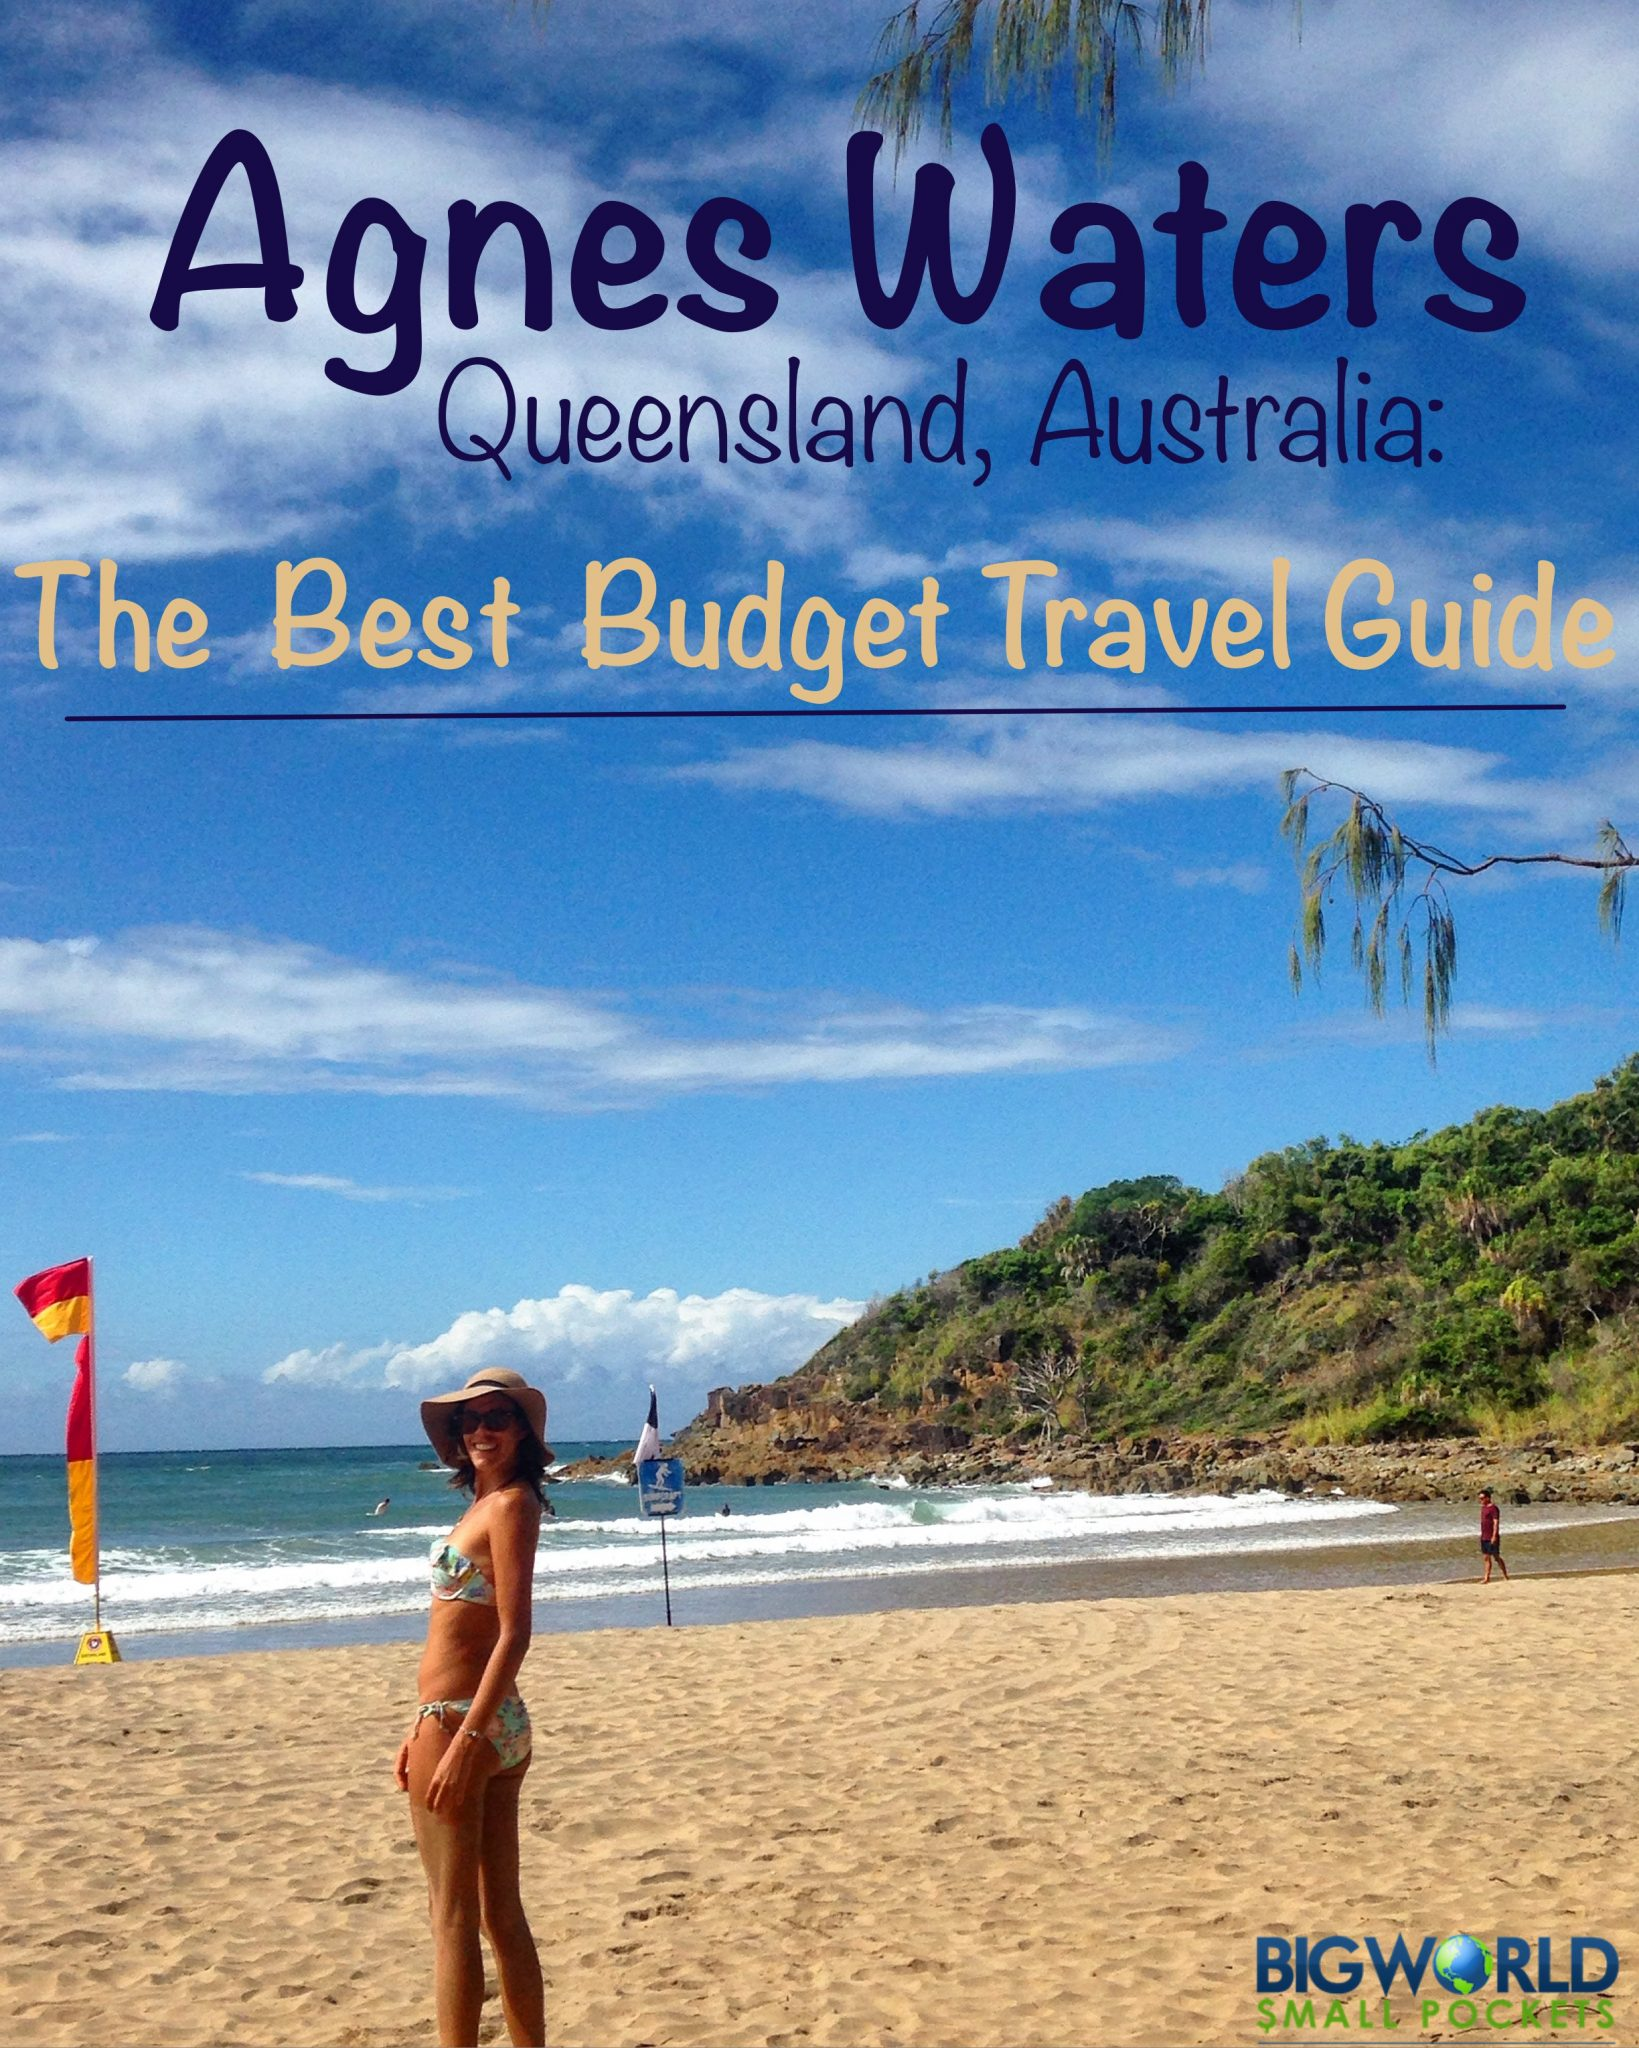 Agnes Water Budget Travel Guide {Big World Small Pockets}